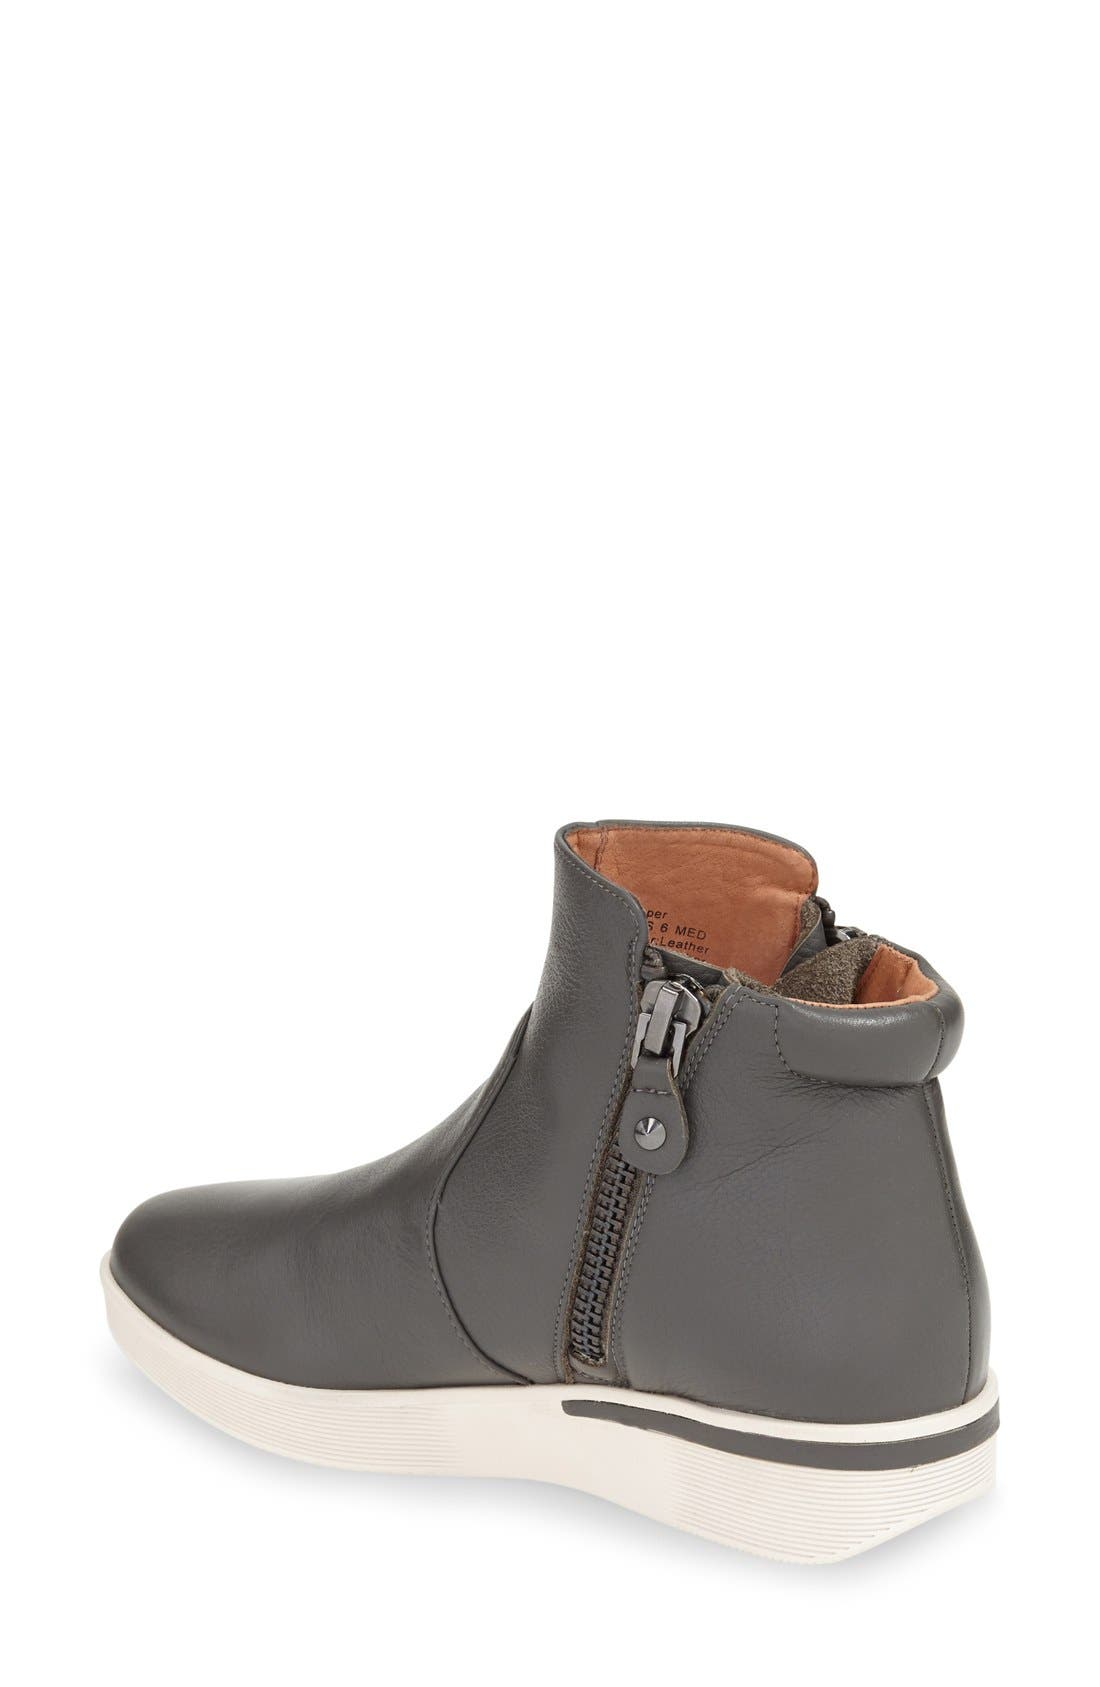 by Kenneth Cole 'Harper' Sneaker Bootie,                             Alternate thumbnail 6, color,